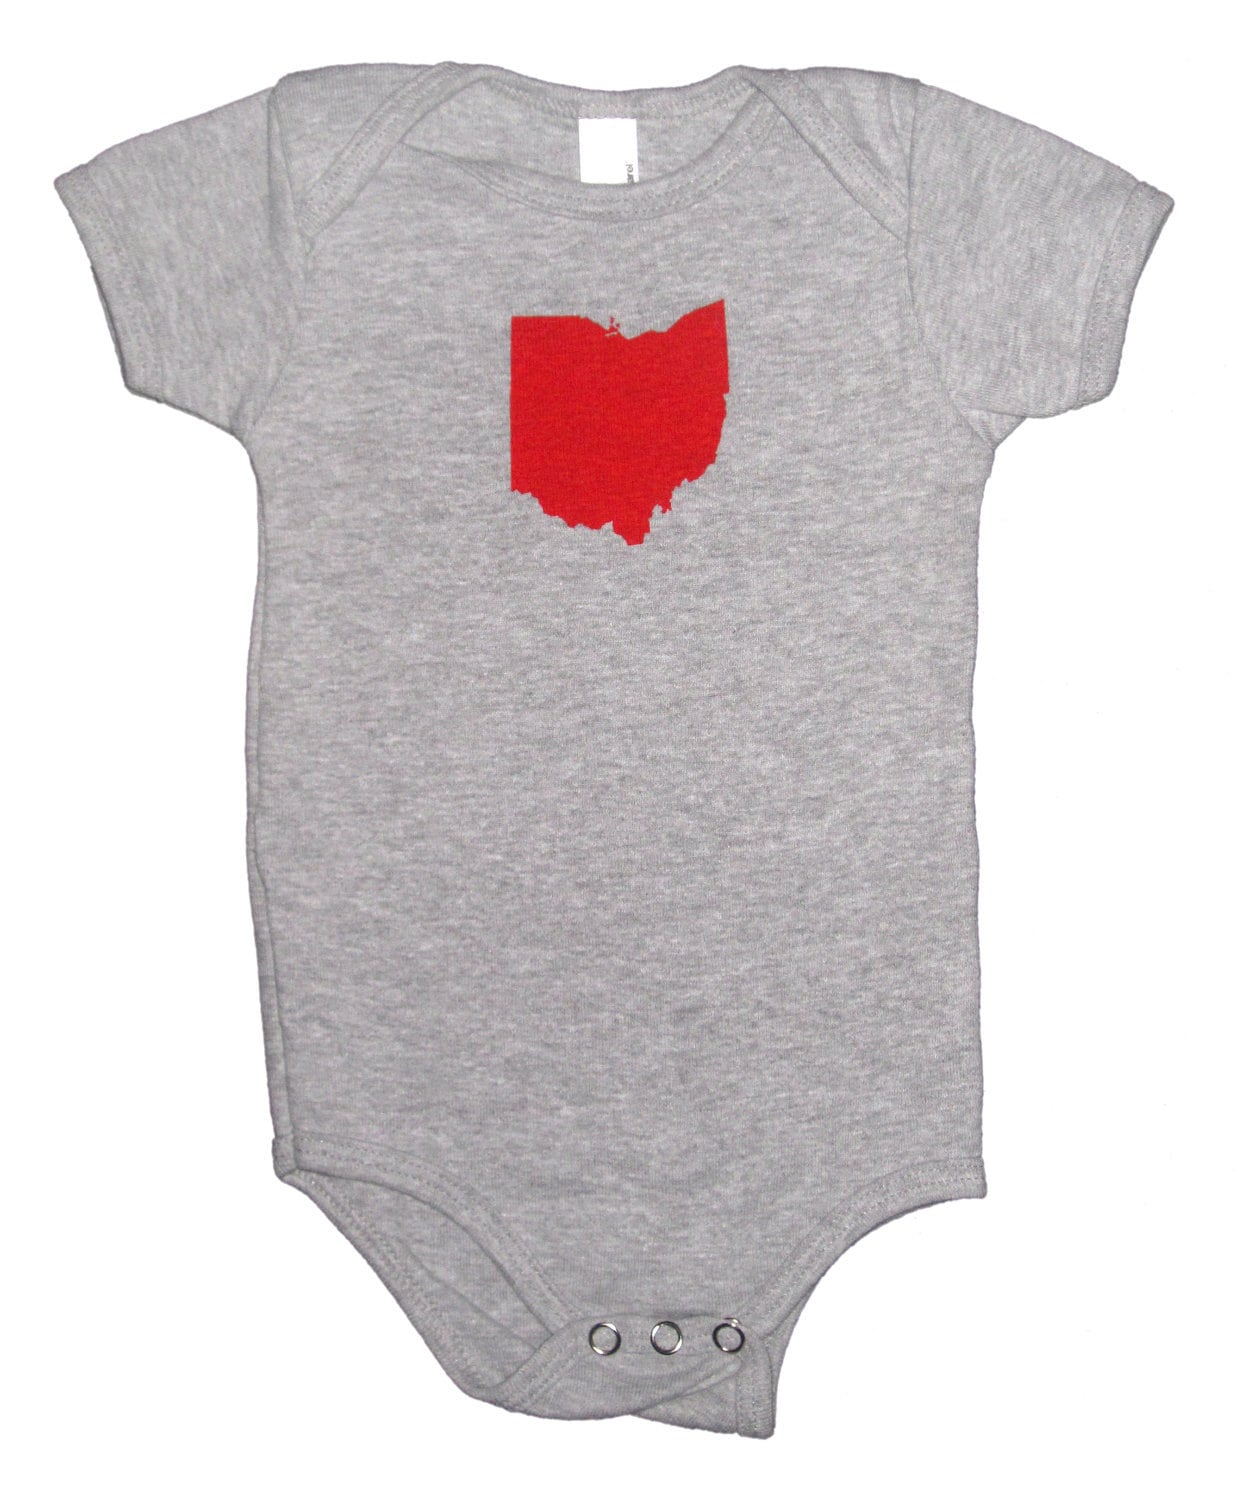 American Apparel Baby Onesies Ohio State On Heather Grey